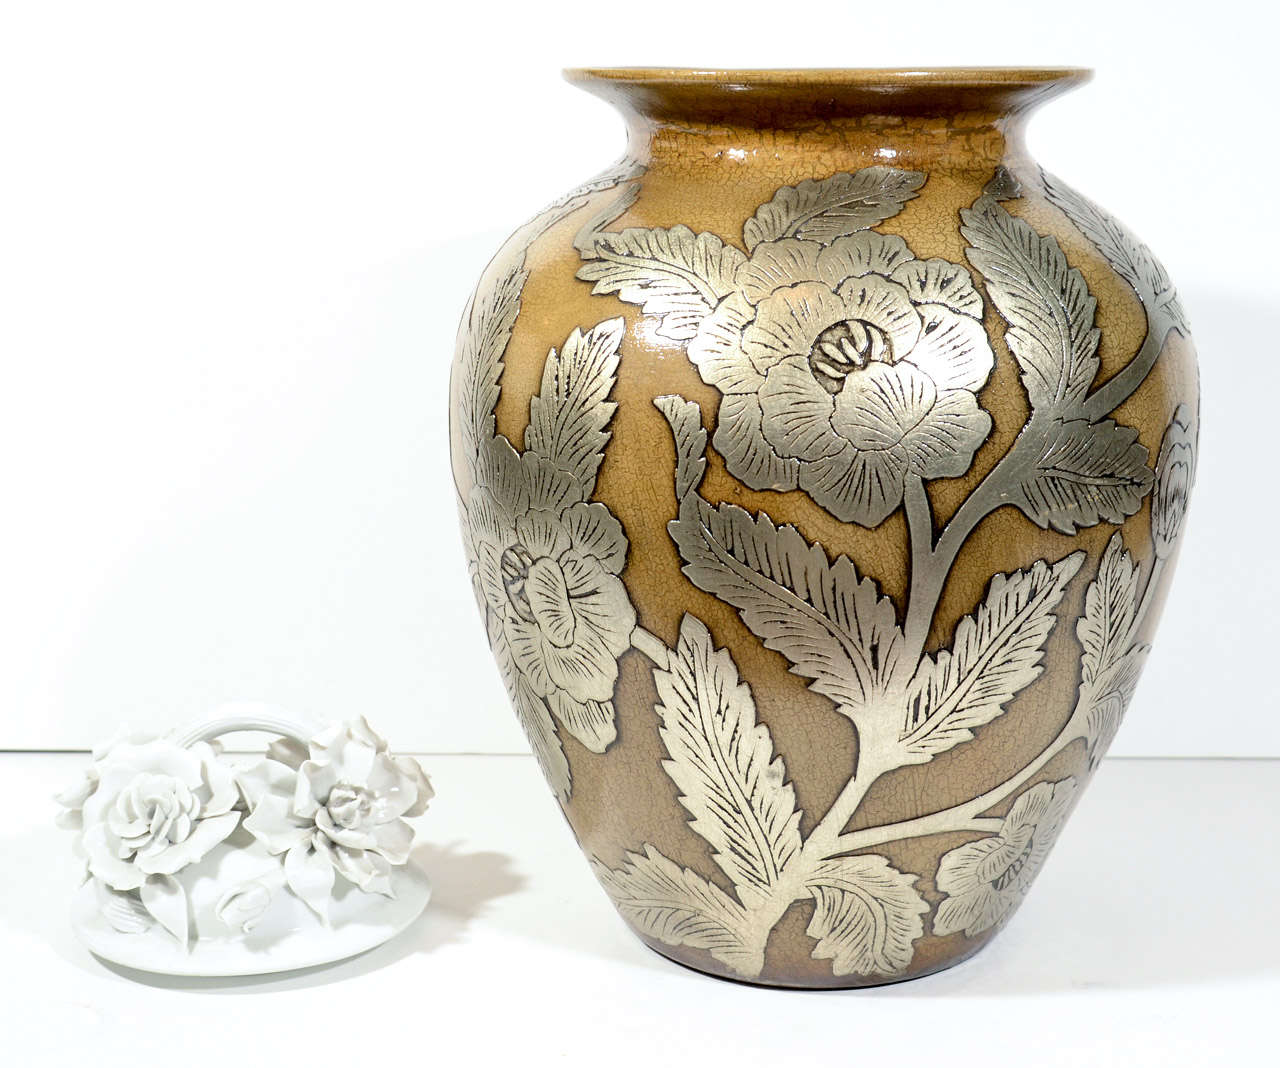 Ceramic Pottery Urn Vase With Relief Designs In Silver